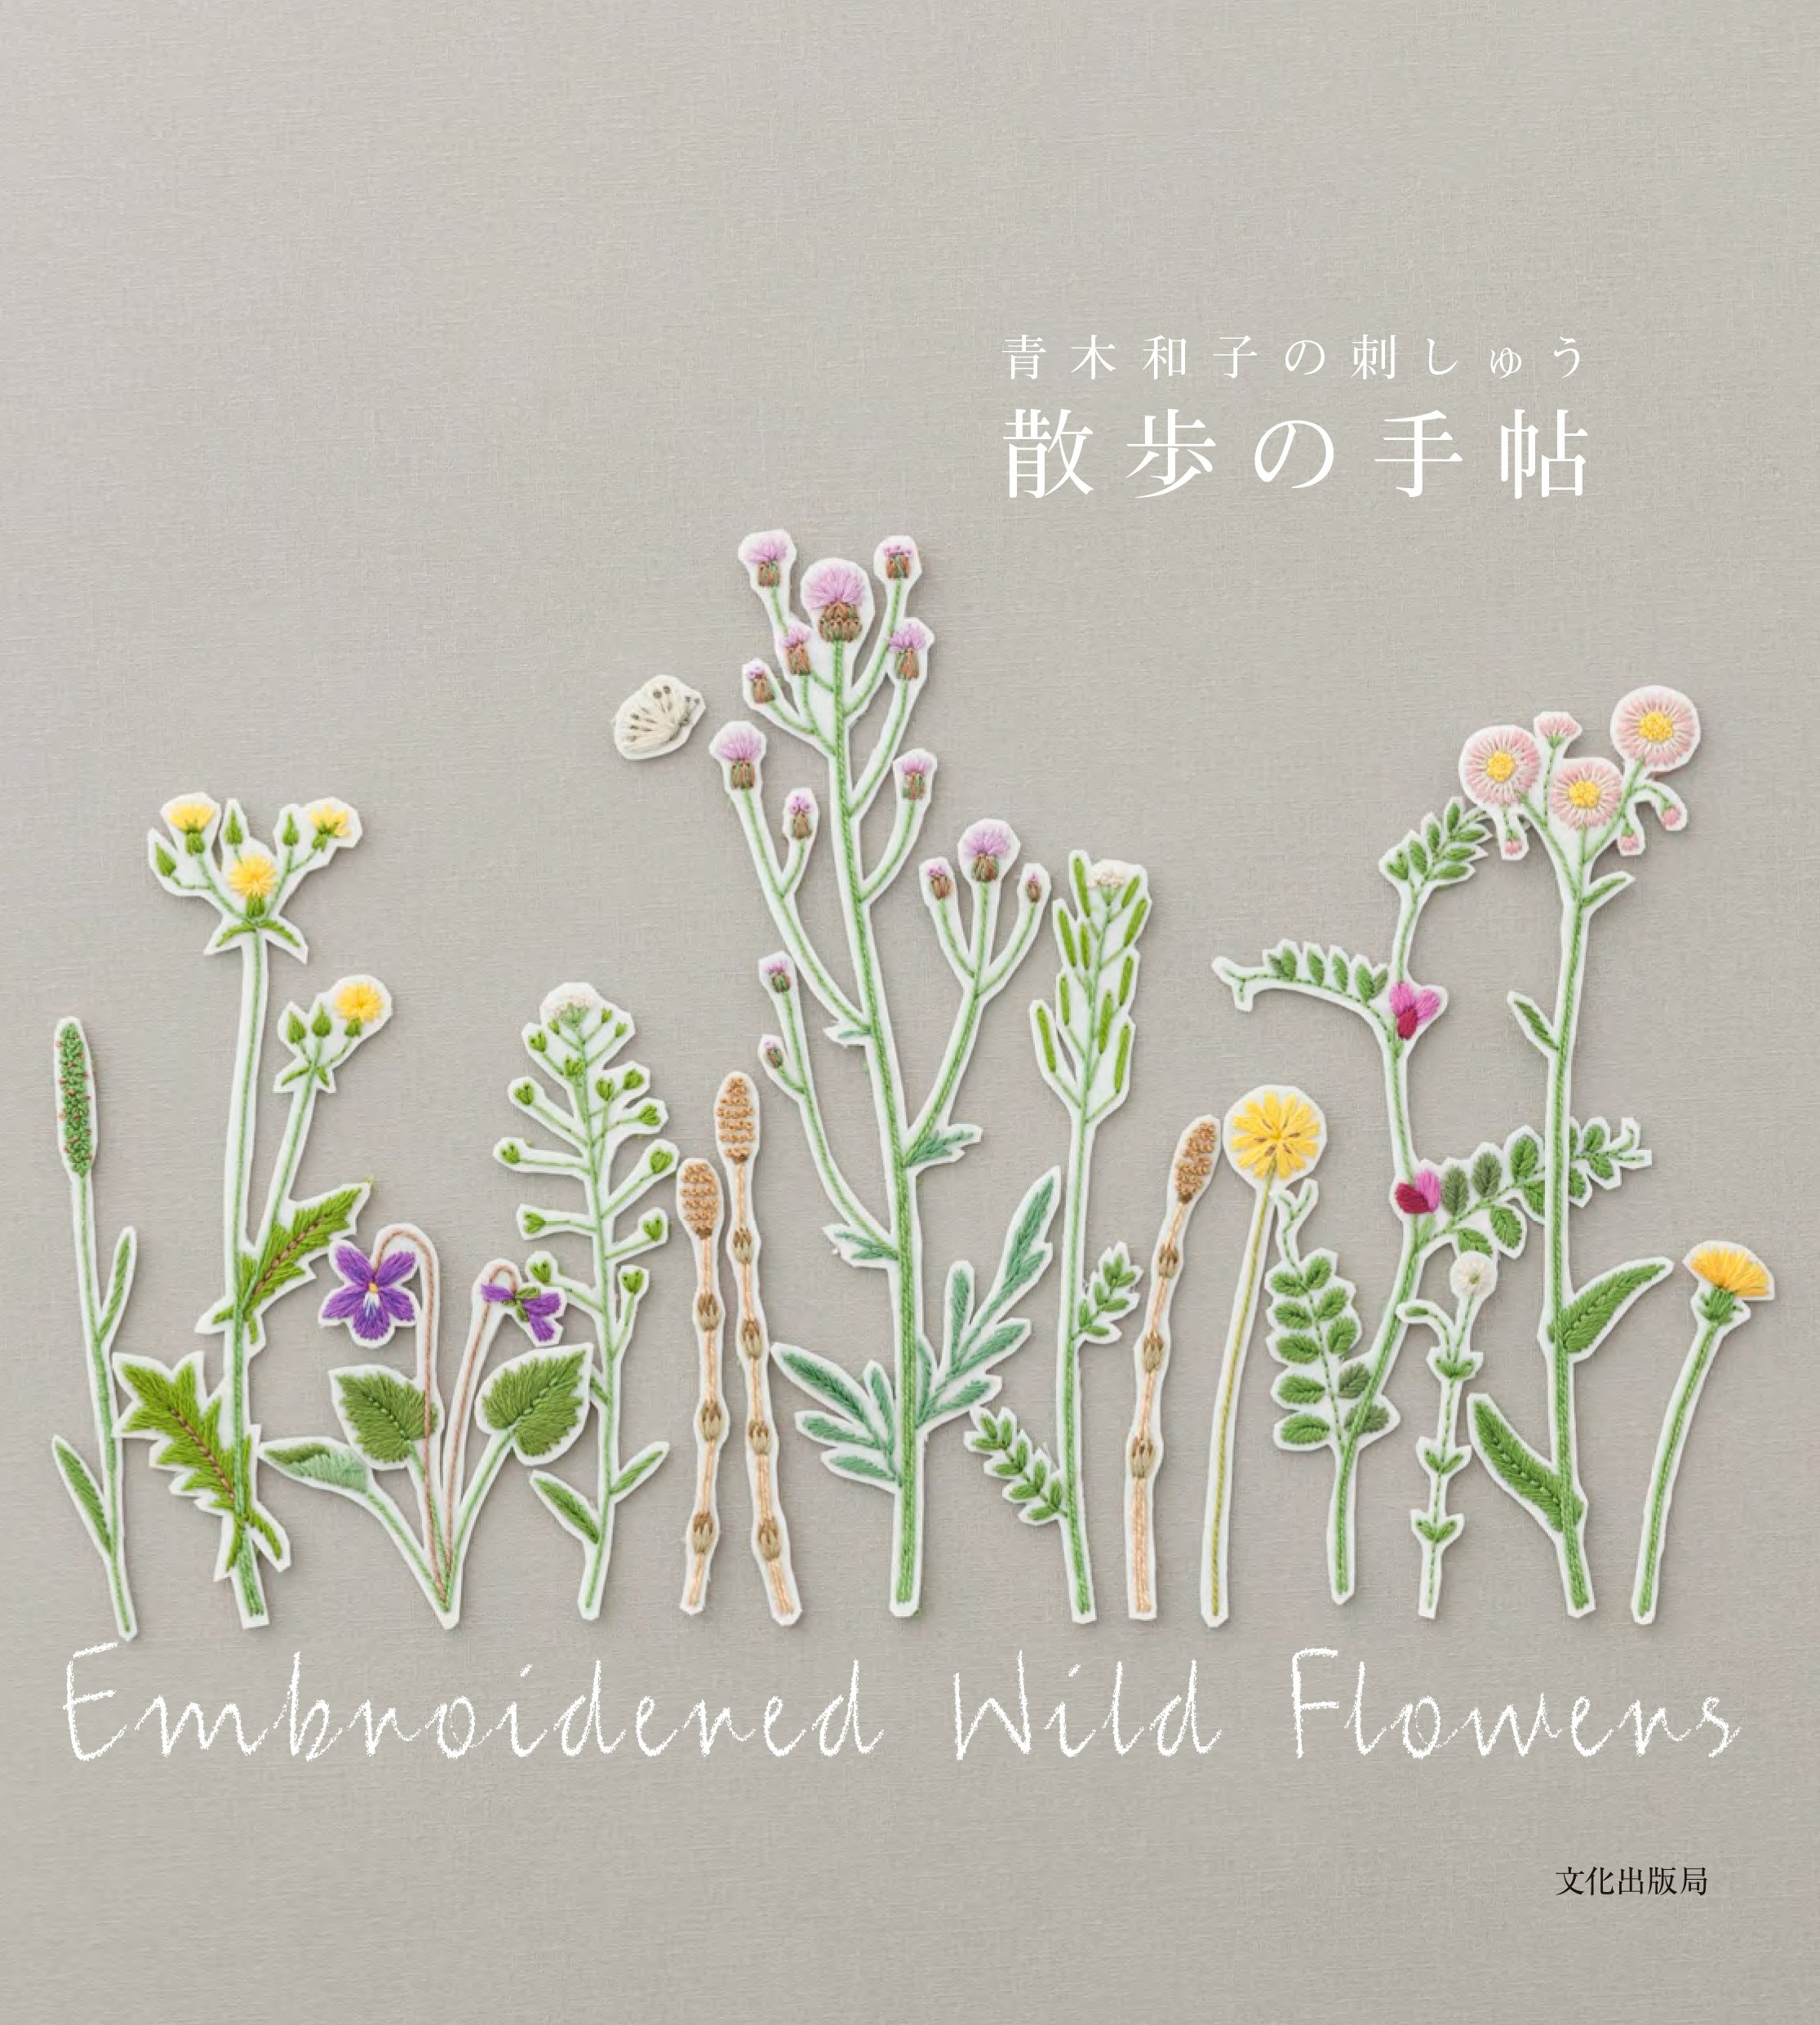 Kazuko Aoki embroidery walking handbook